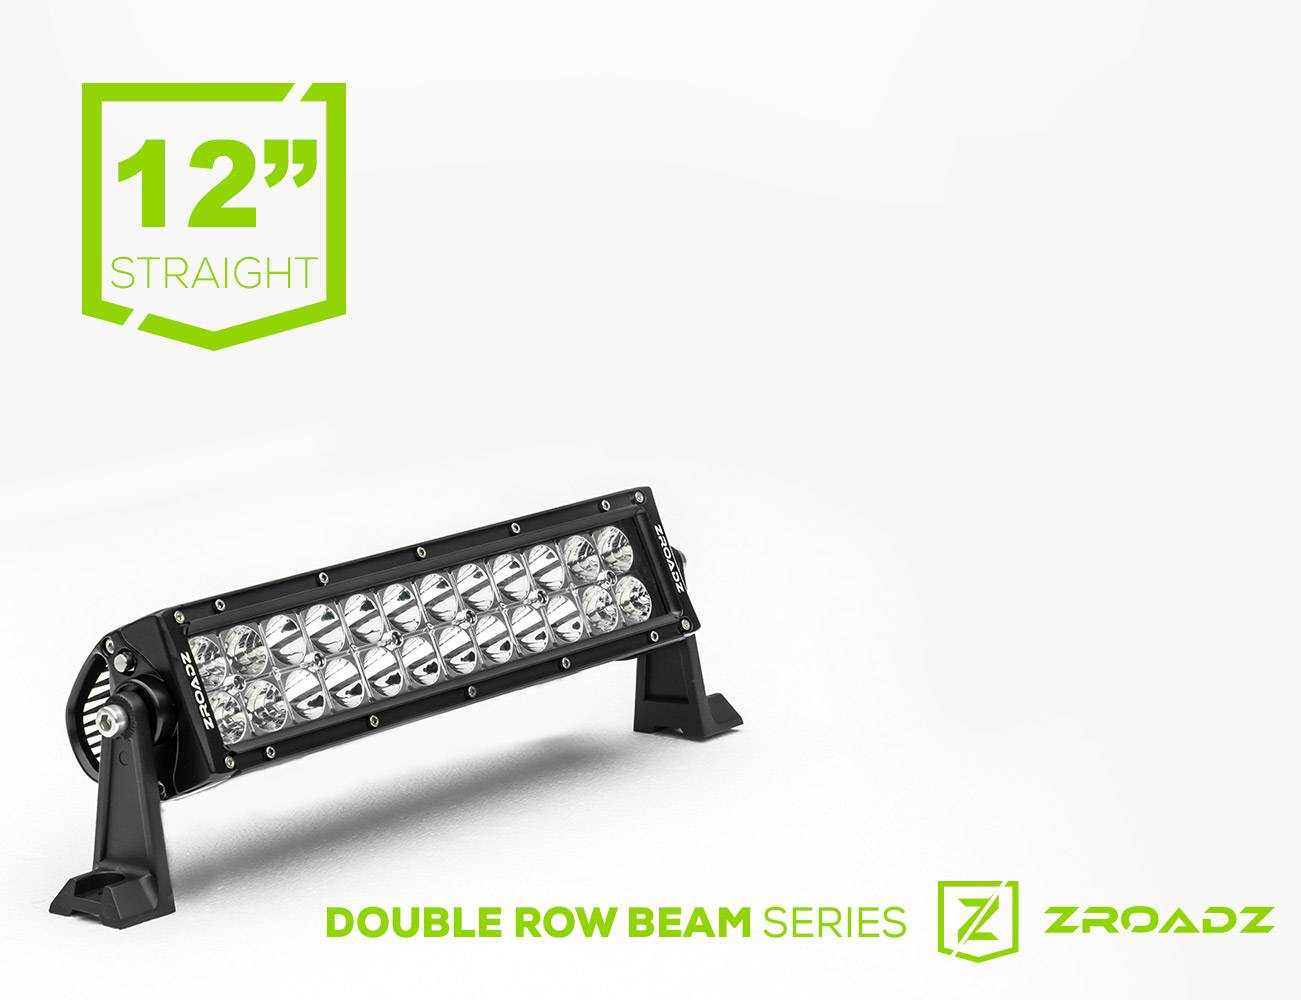 ZROADZ                                             - (1) 12 Inch LED Straight Double Row Light Bar - PN #Z30BC14W72